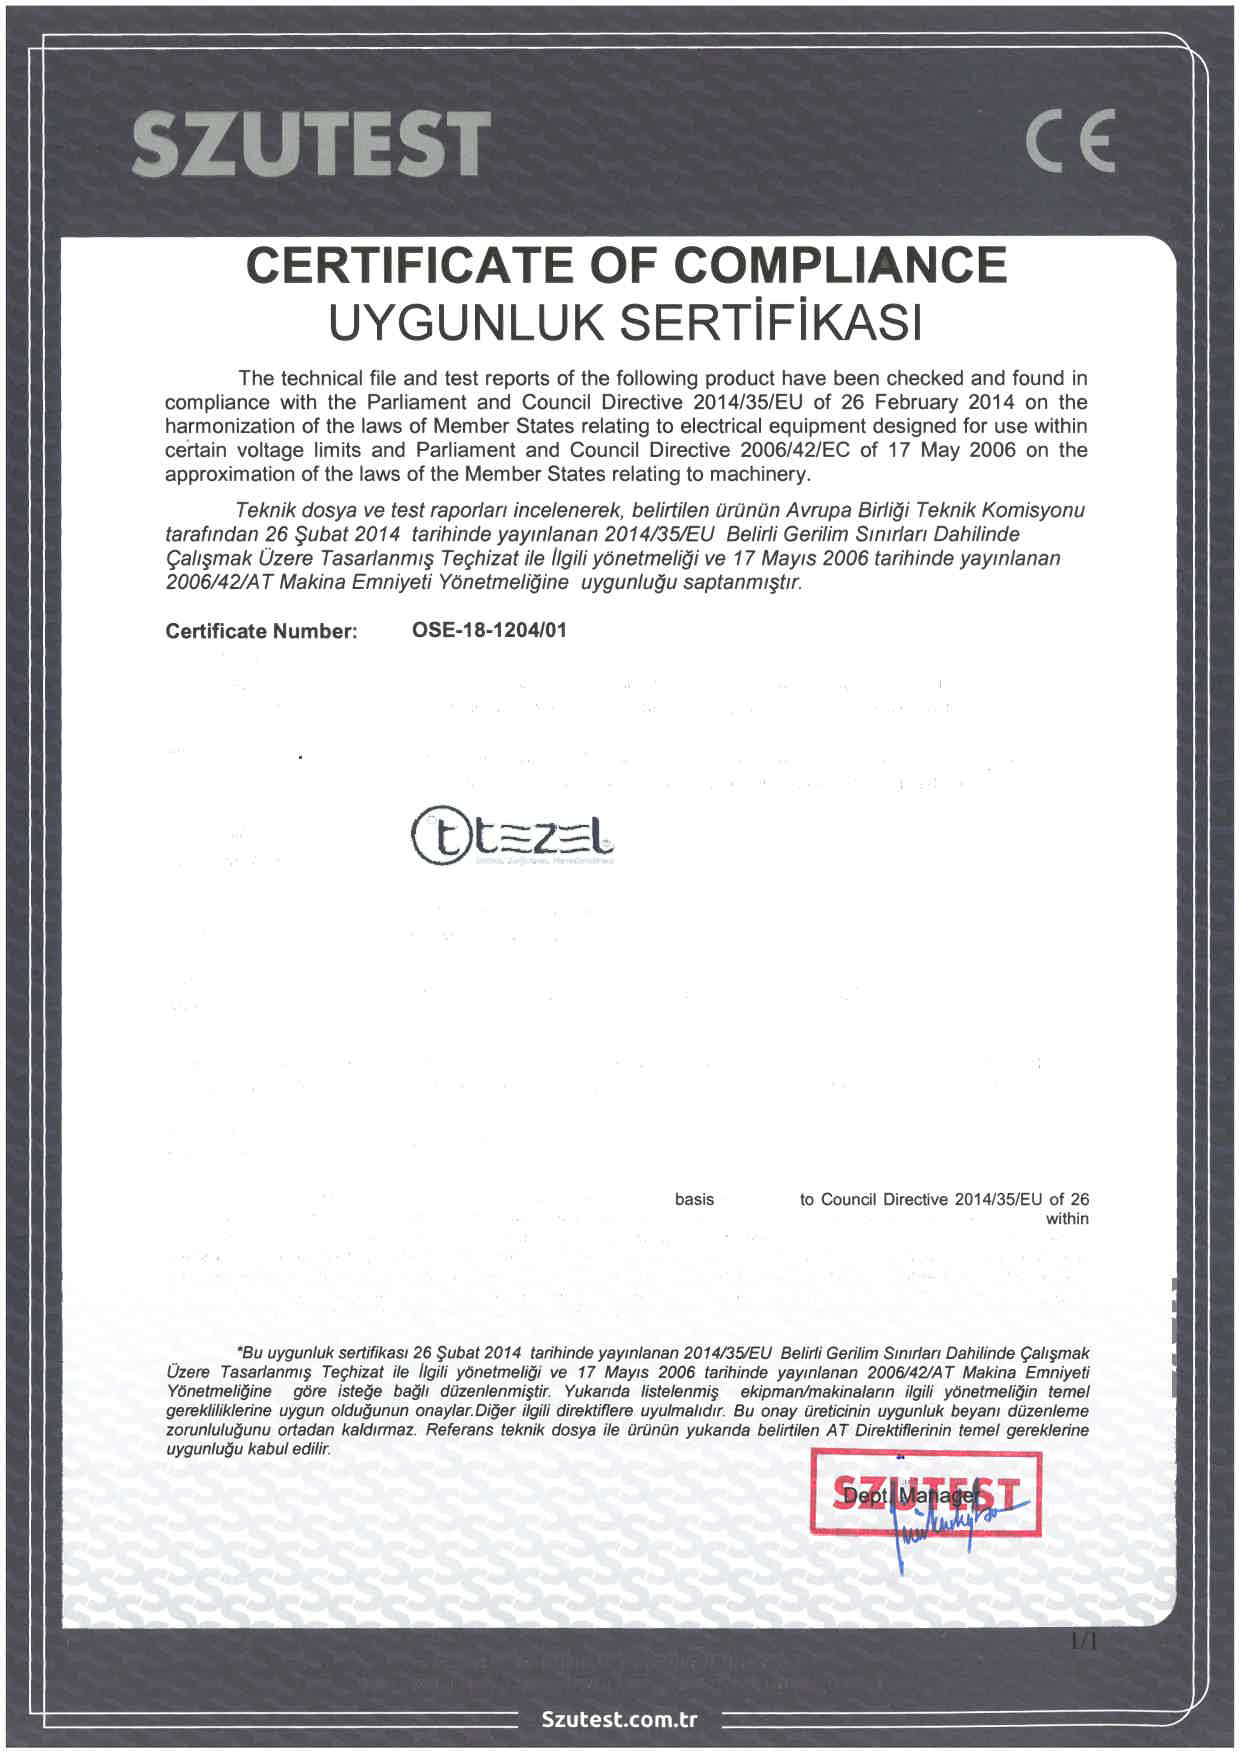 ce certificate received european conformity union which